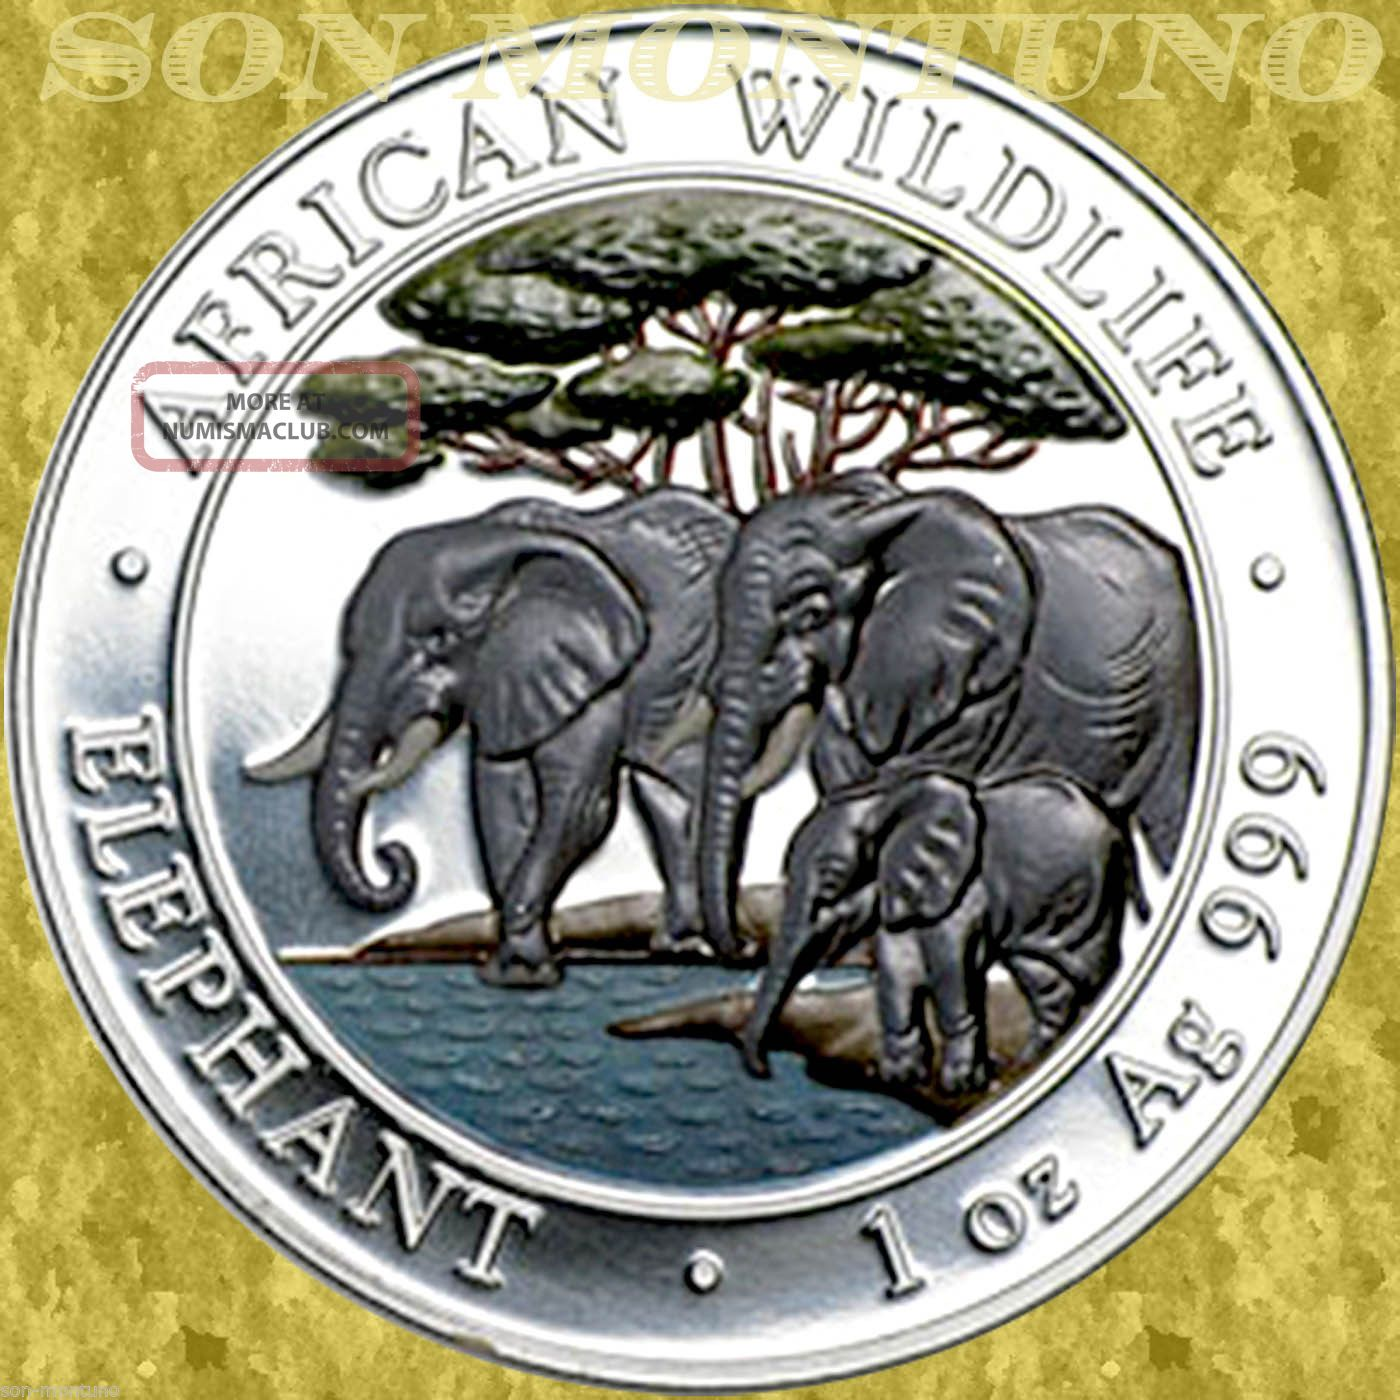 2013 Somalia African Wildlife Elephant 1 Oz Colored Silver Coin Only 5000 Minted Africa photo